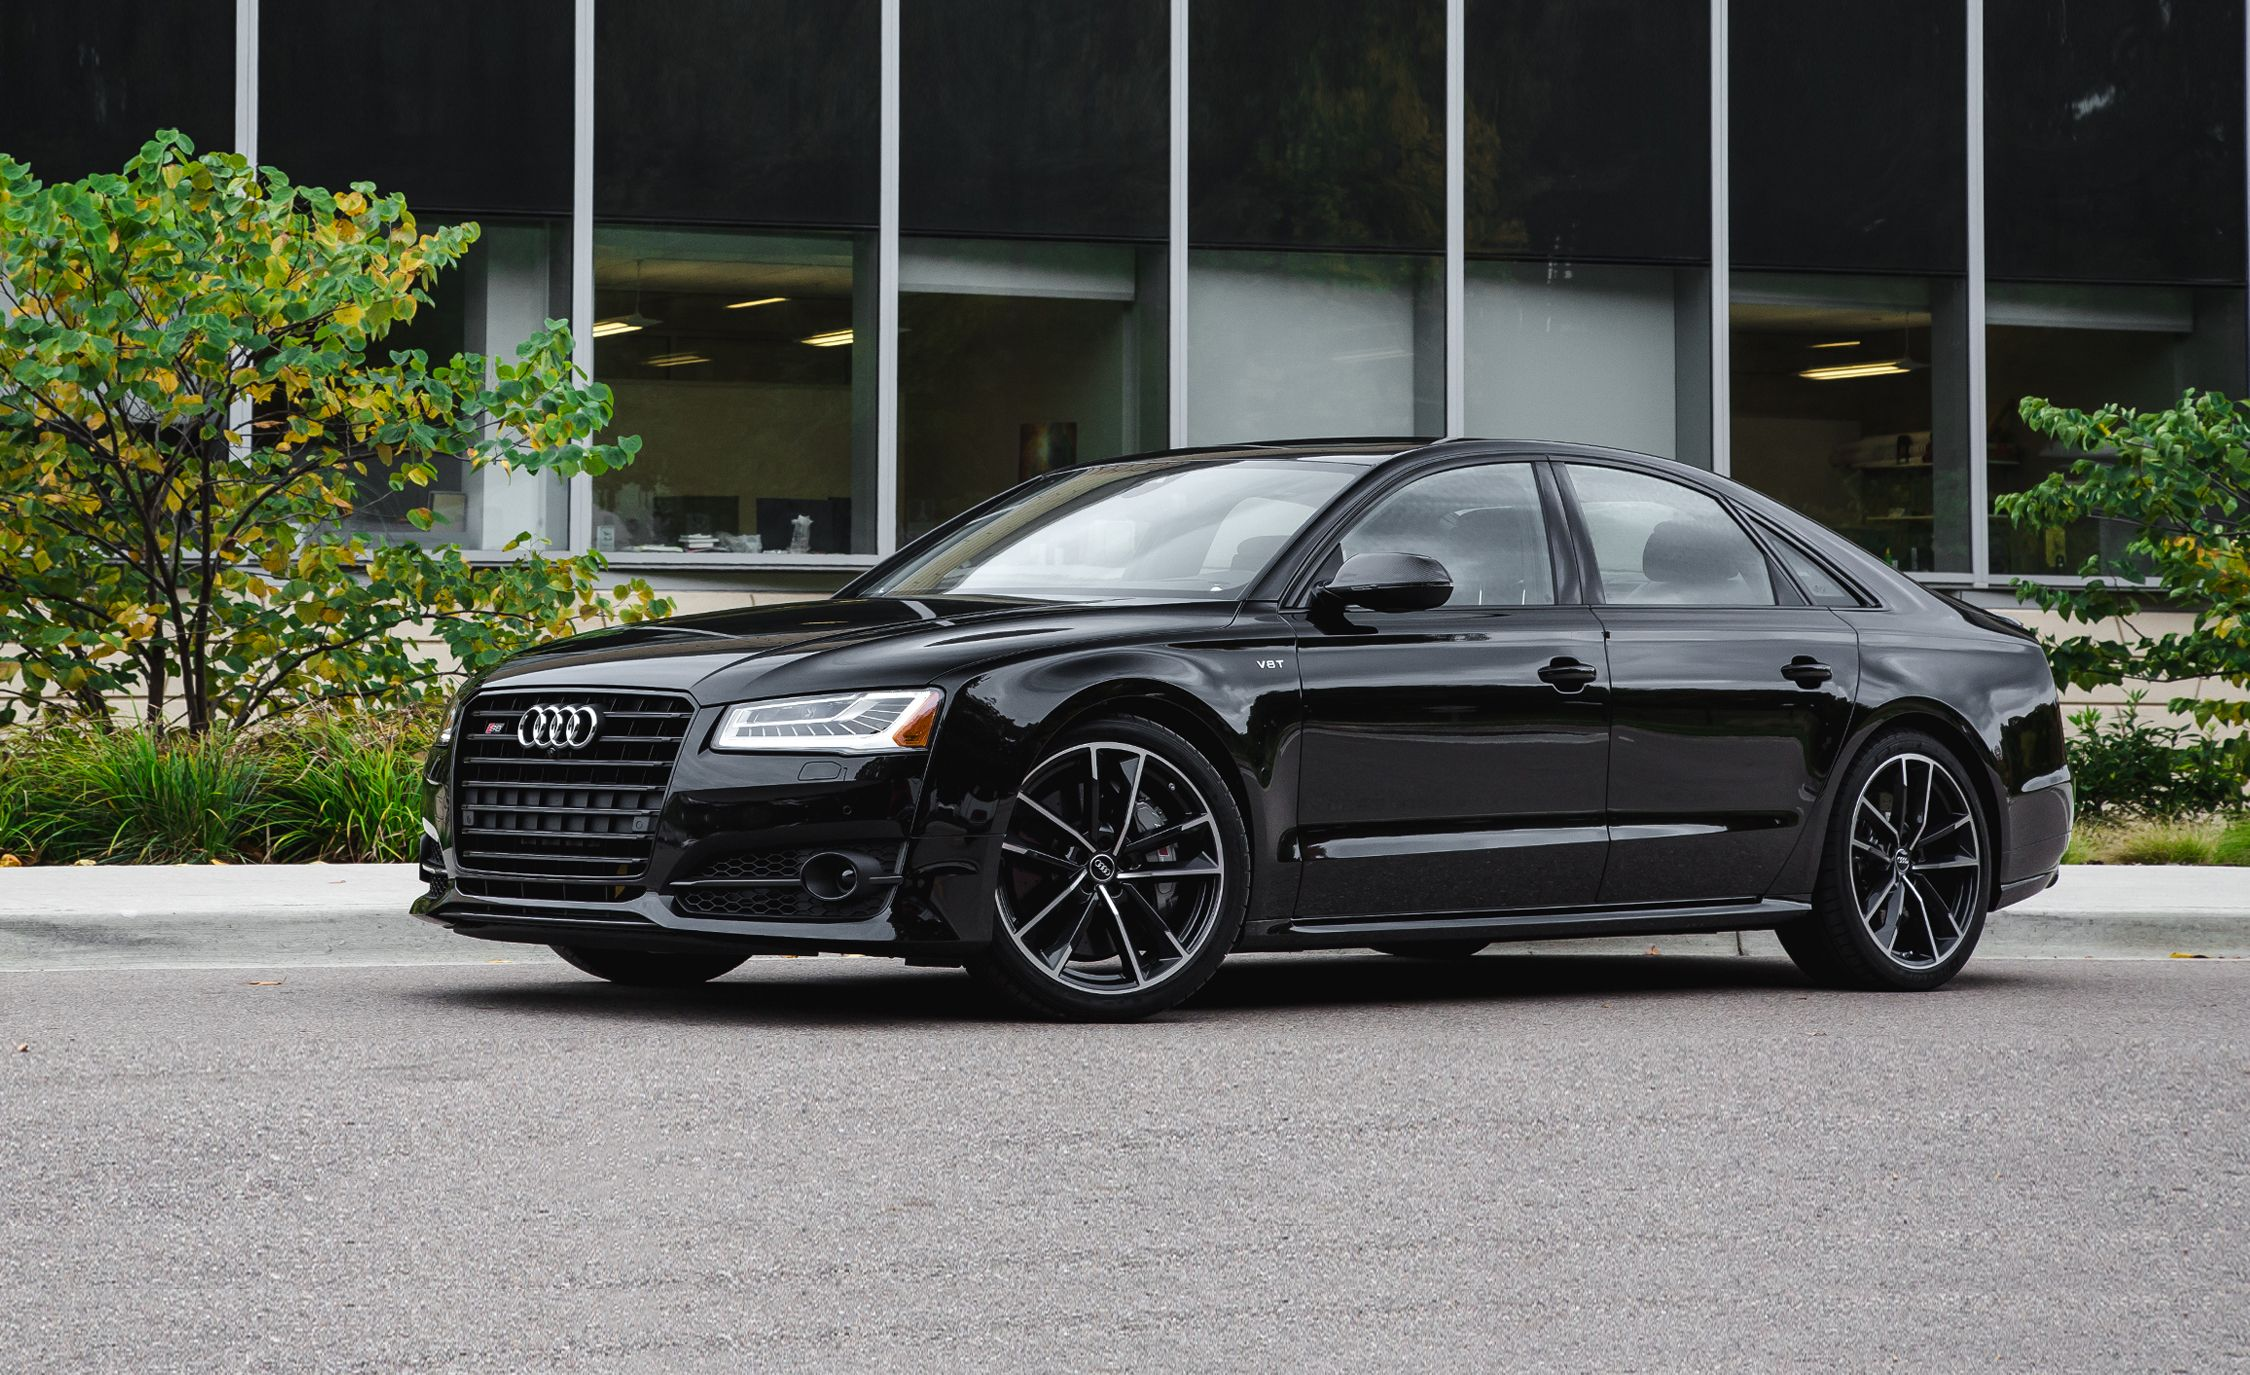 2017 Audi S8 Plus Quick Take Review Audi Small Luxury Cars Audi A8